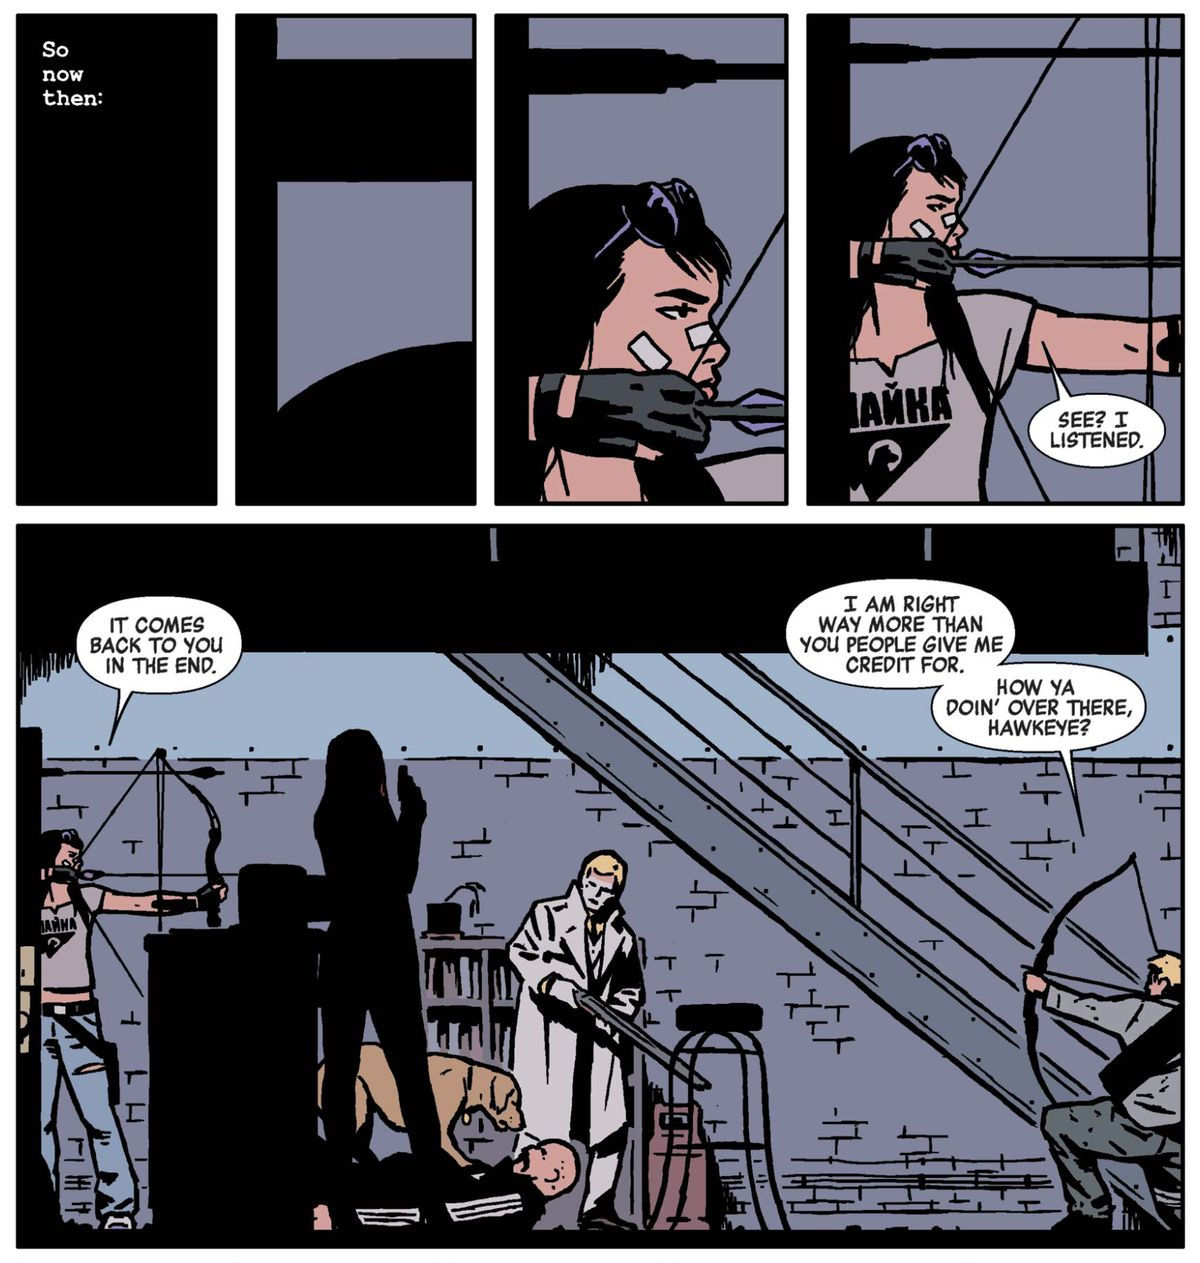 Kate Bishop, Clint Barton, and others in Hawkeye #22, Marvel Comics (2015).